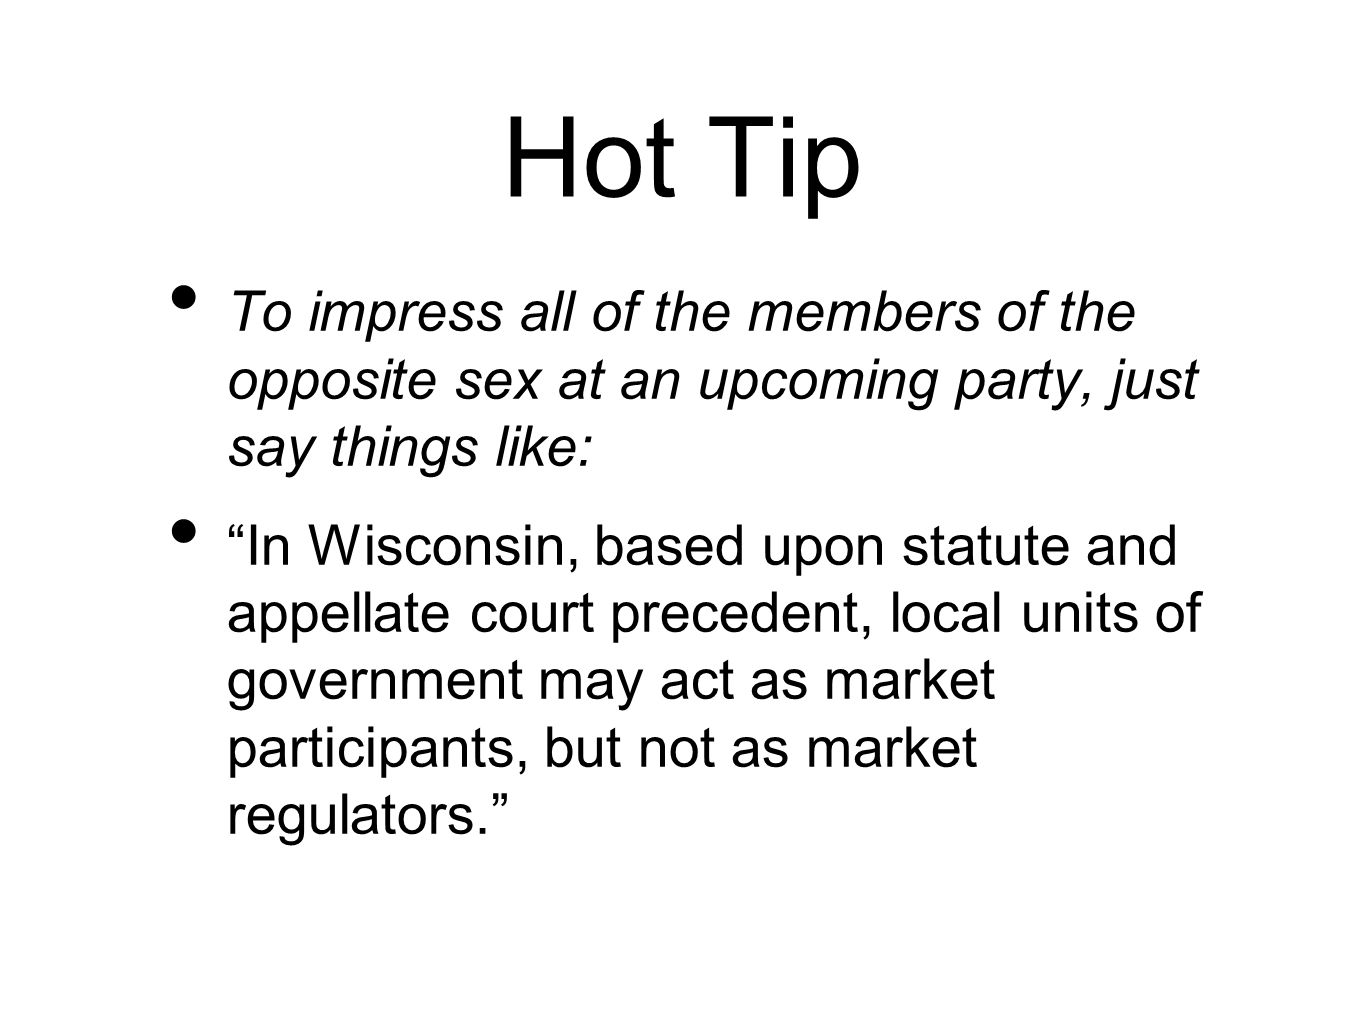 Hot Tip To impress all of the members of the opposite sex at an upcoming party, just say things like: In Wisconsin, based upon statute and appellate court precedent, local units of government may act as market participants, but not as market regulators.